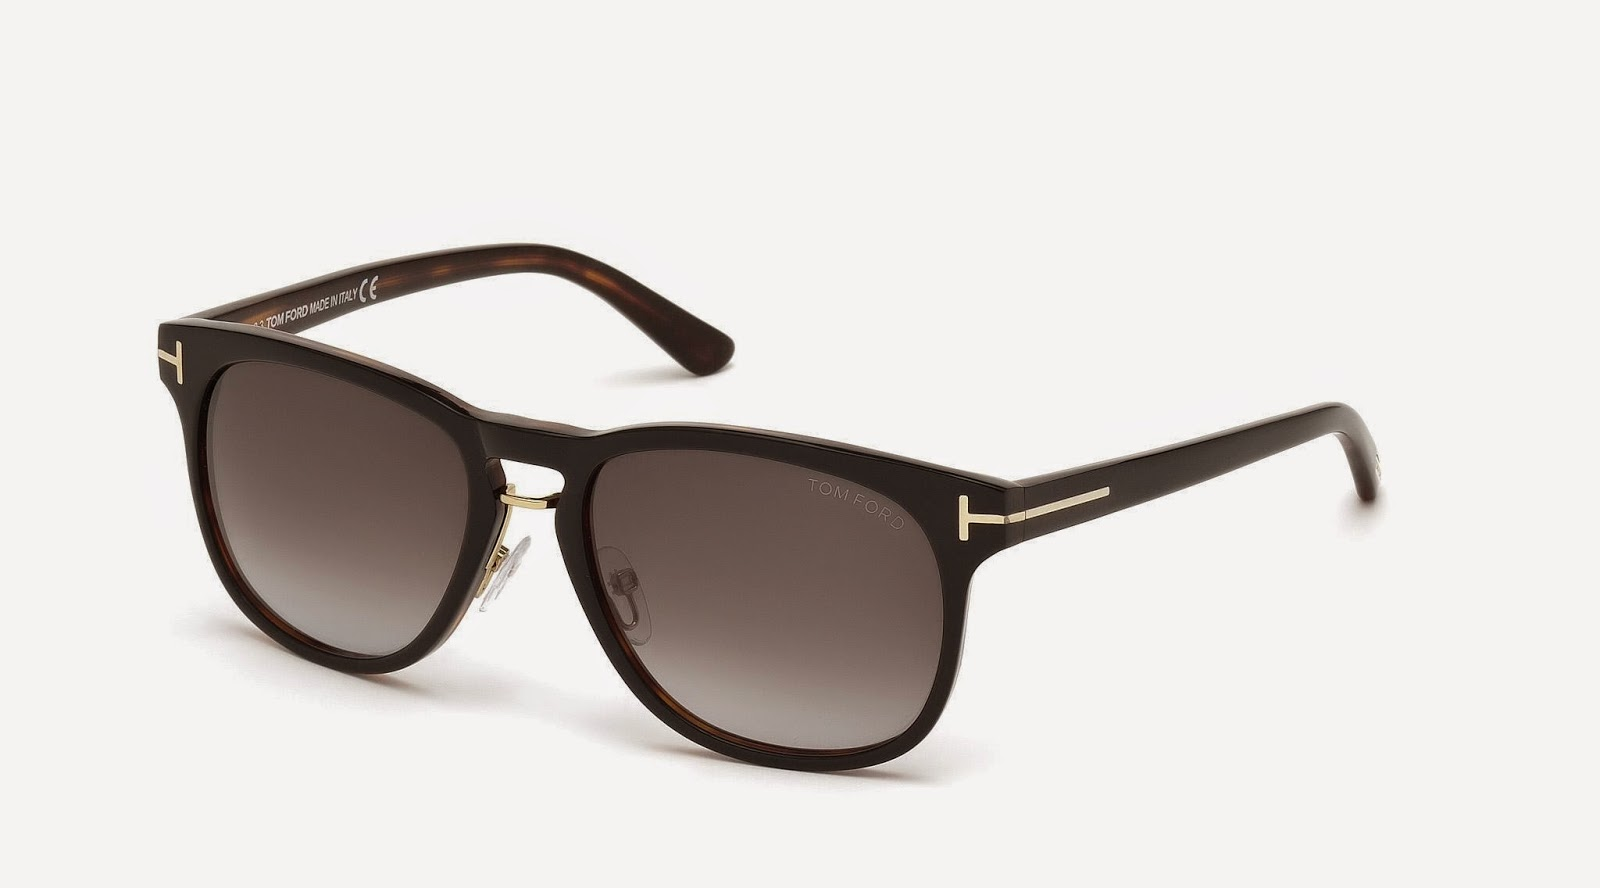 Tom Ford - FT0346 - As Worn by Lewis Hamilton in Australia 2015